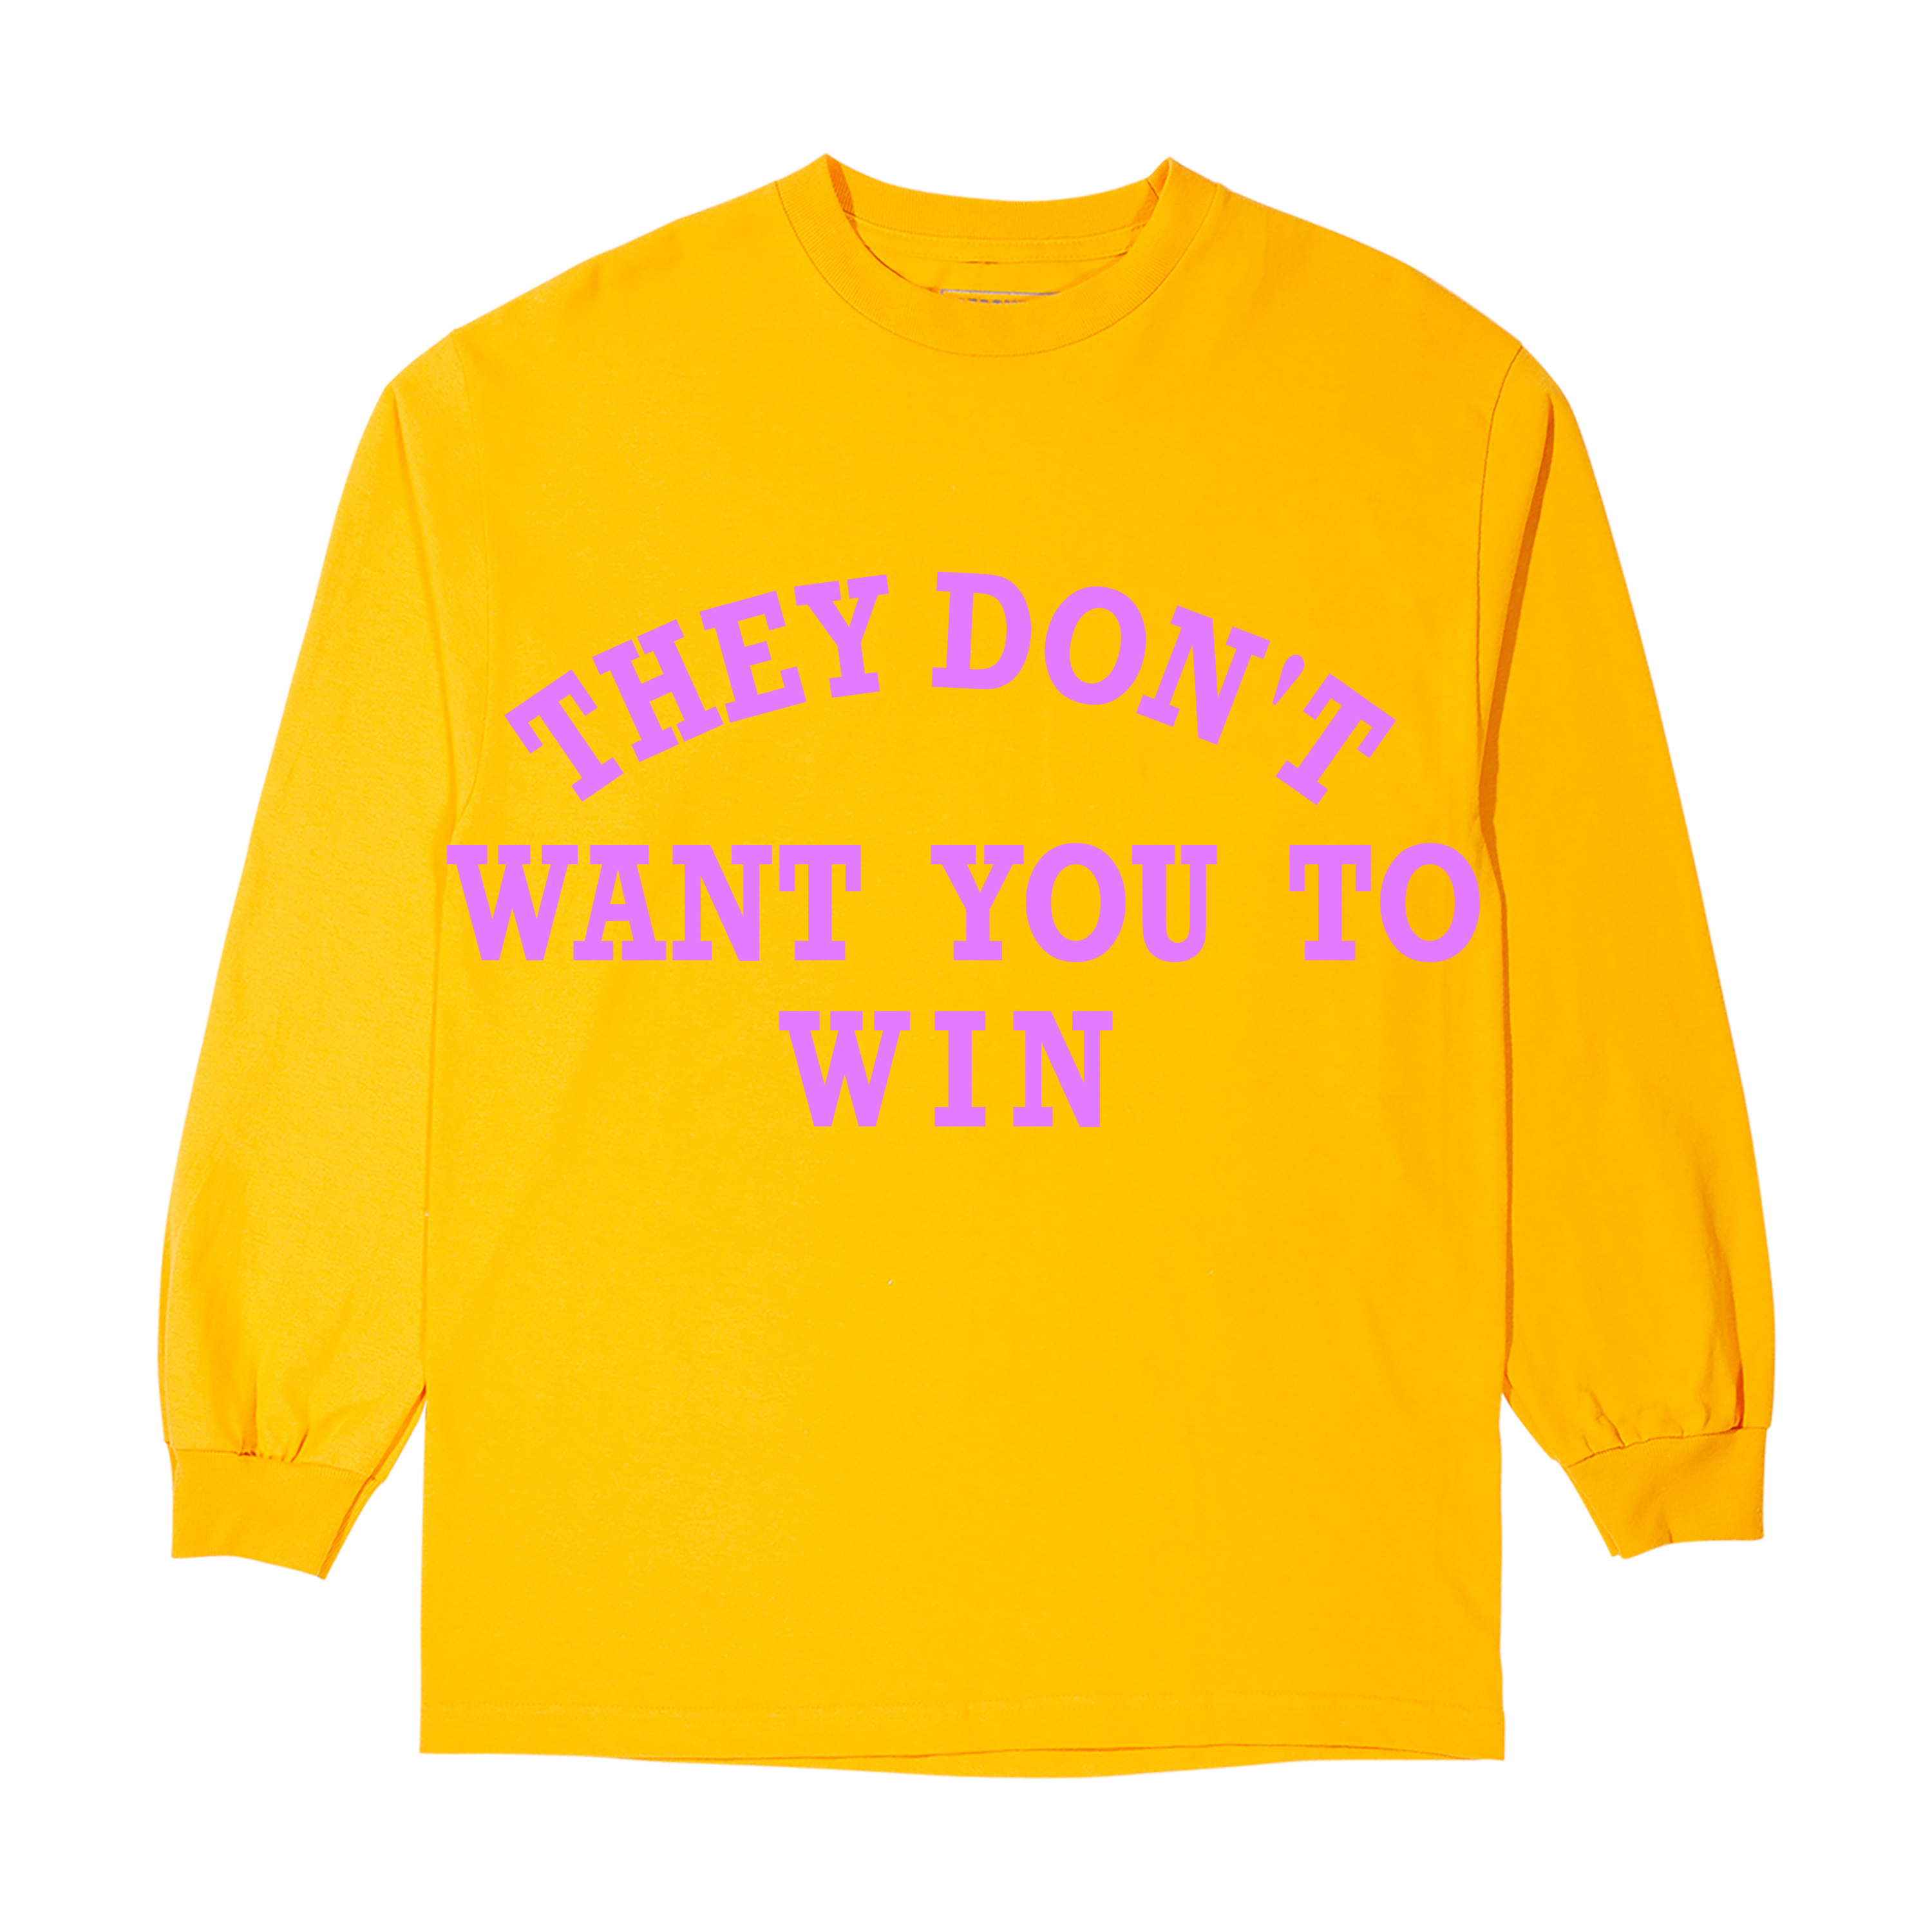 They Don't Want You To Win Yellow Long-Sleeve T-Shirt